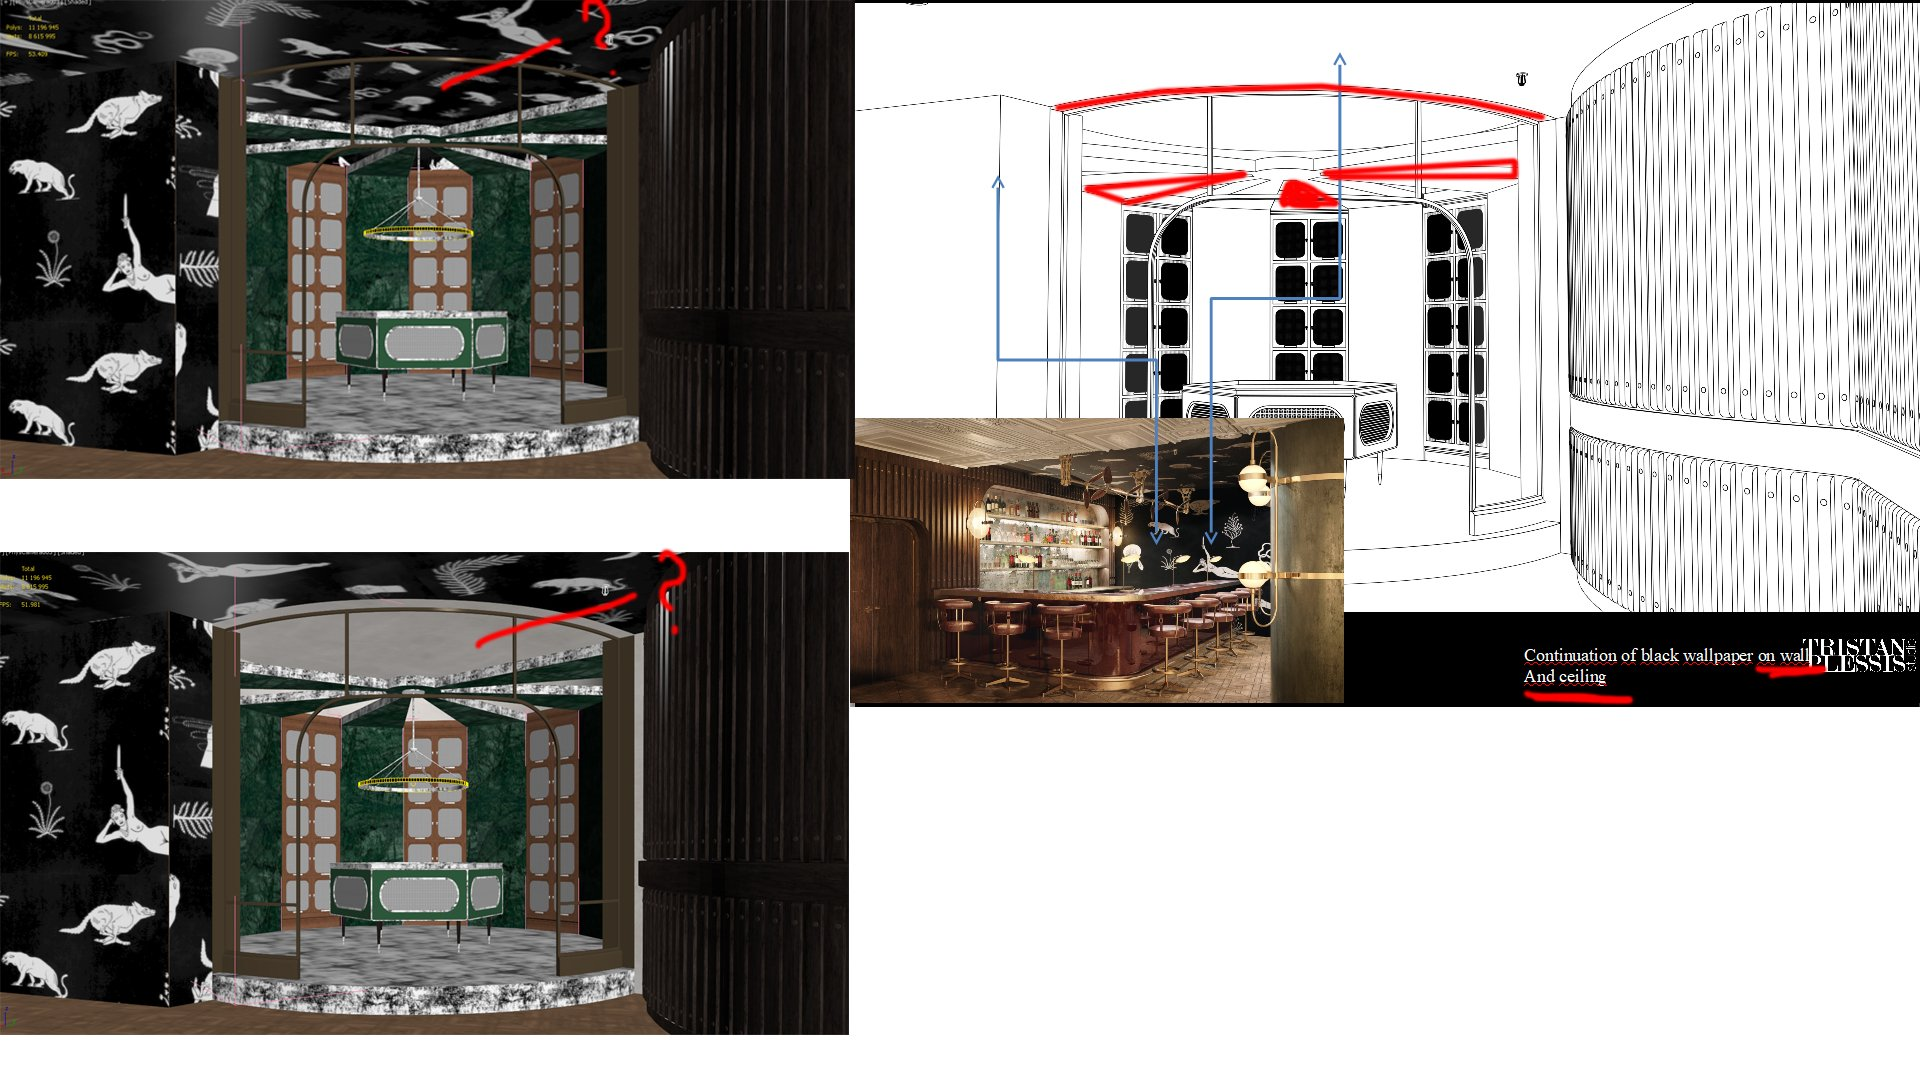 Wine Room 3D Visualization for a Restaurant in Detail